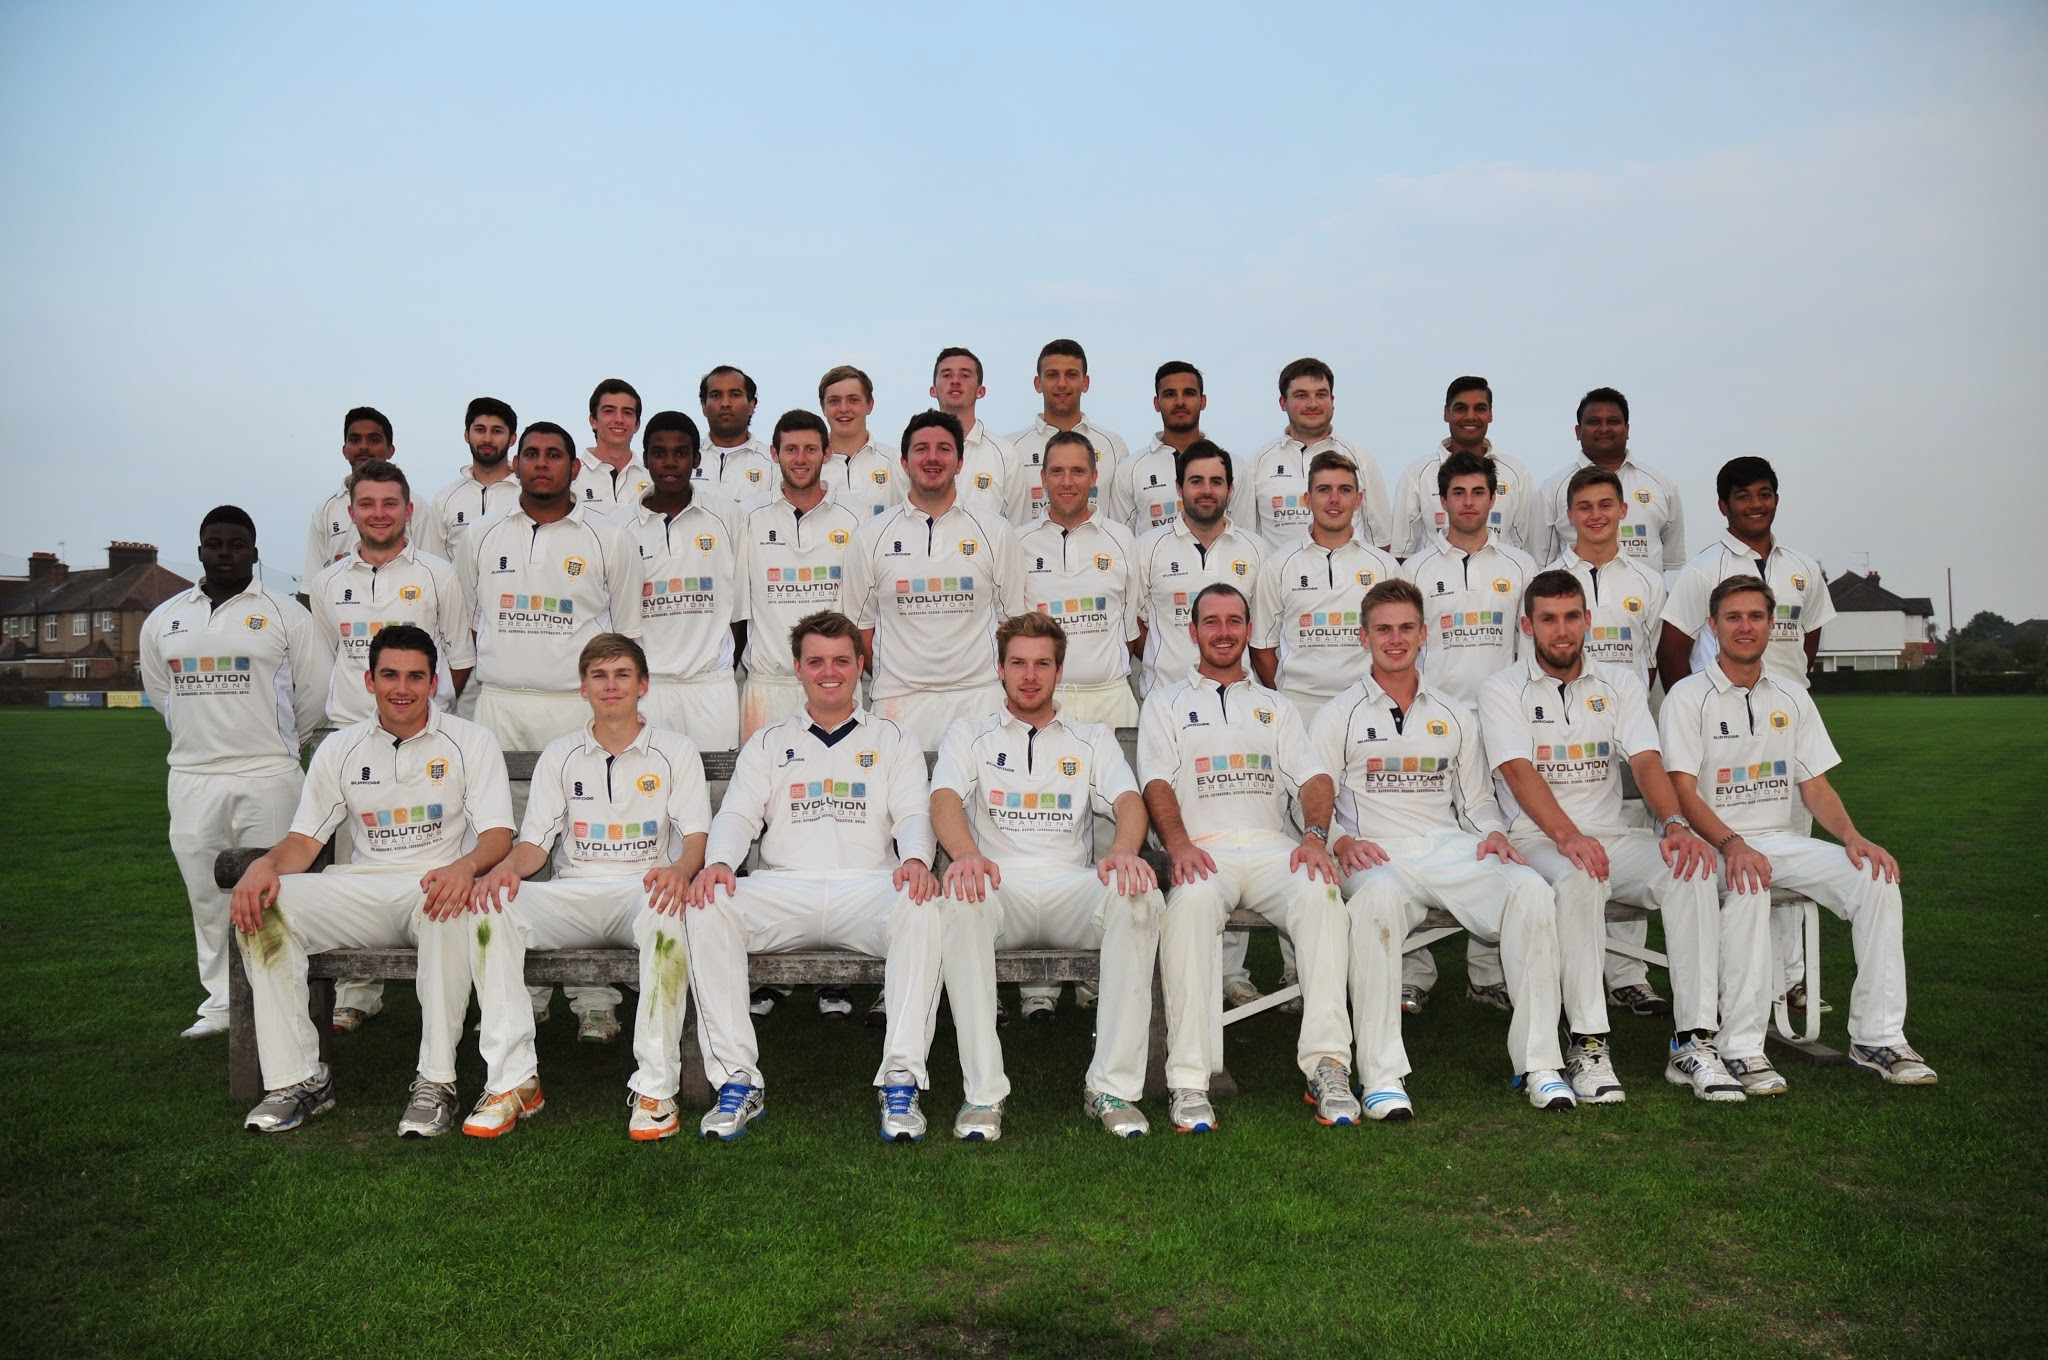 Photo: 1s, 2s and 3s champions 2014